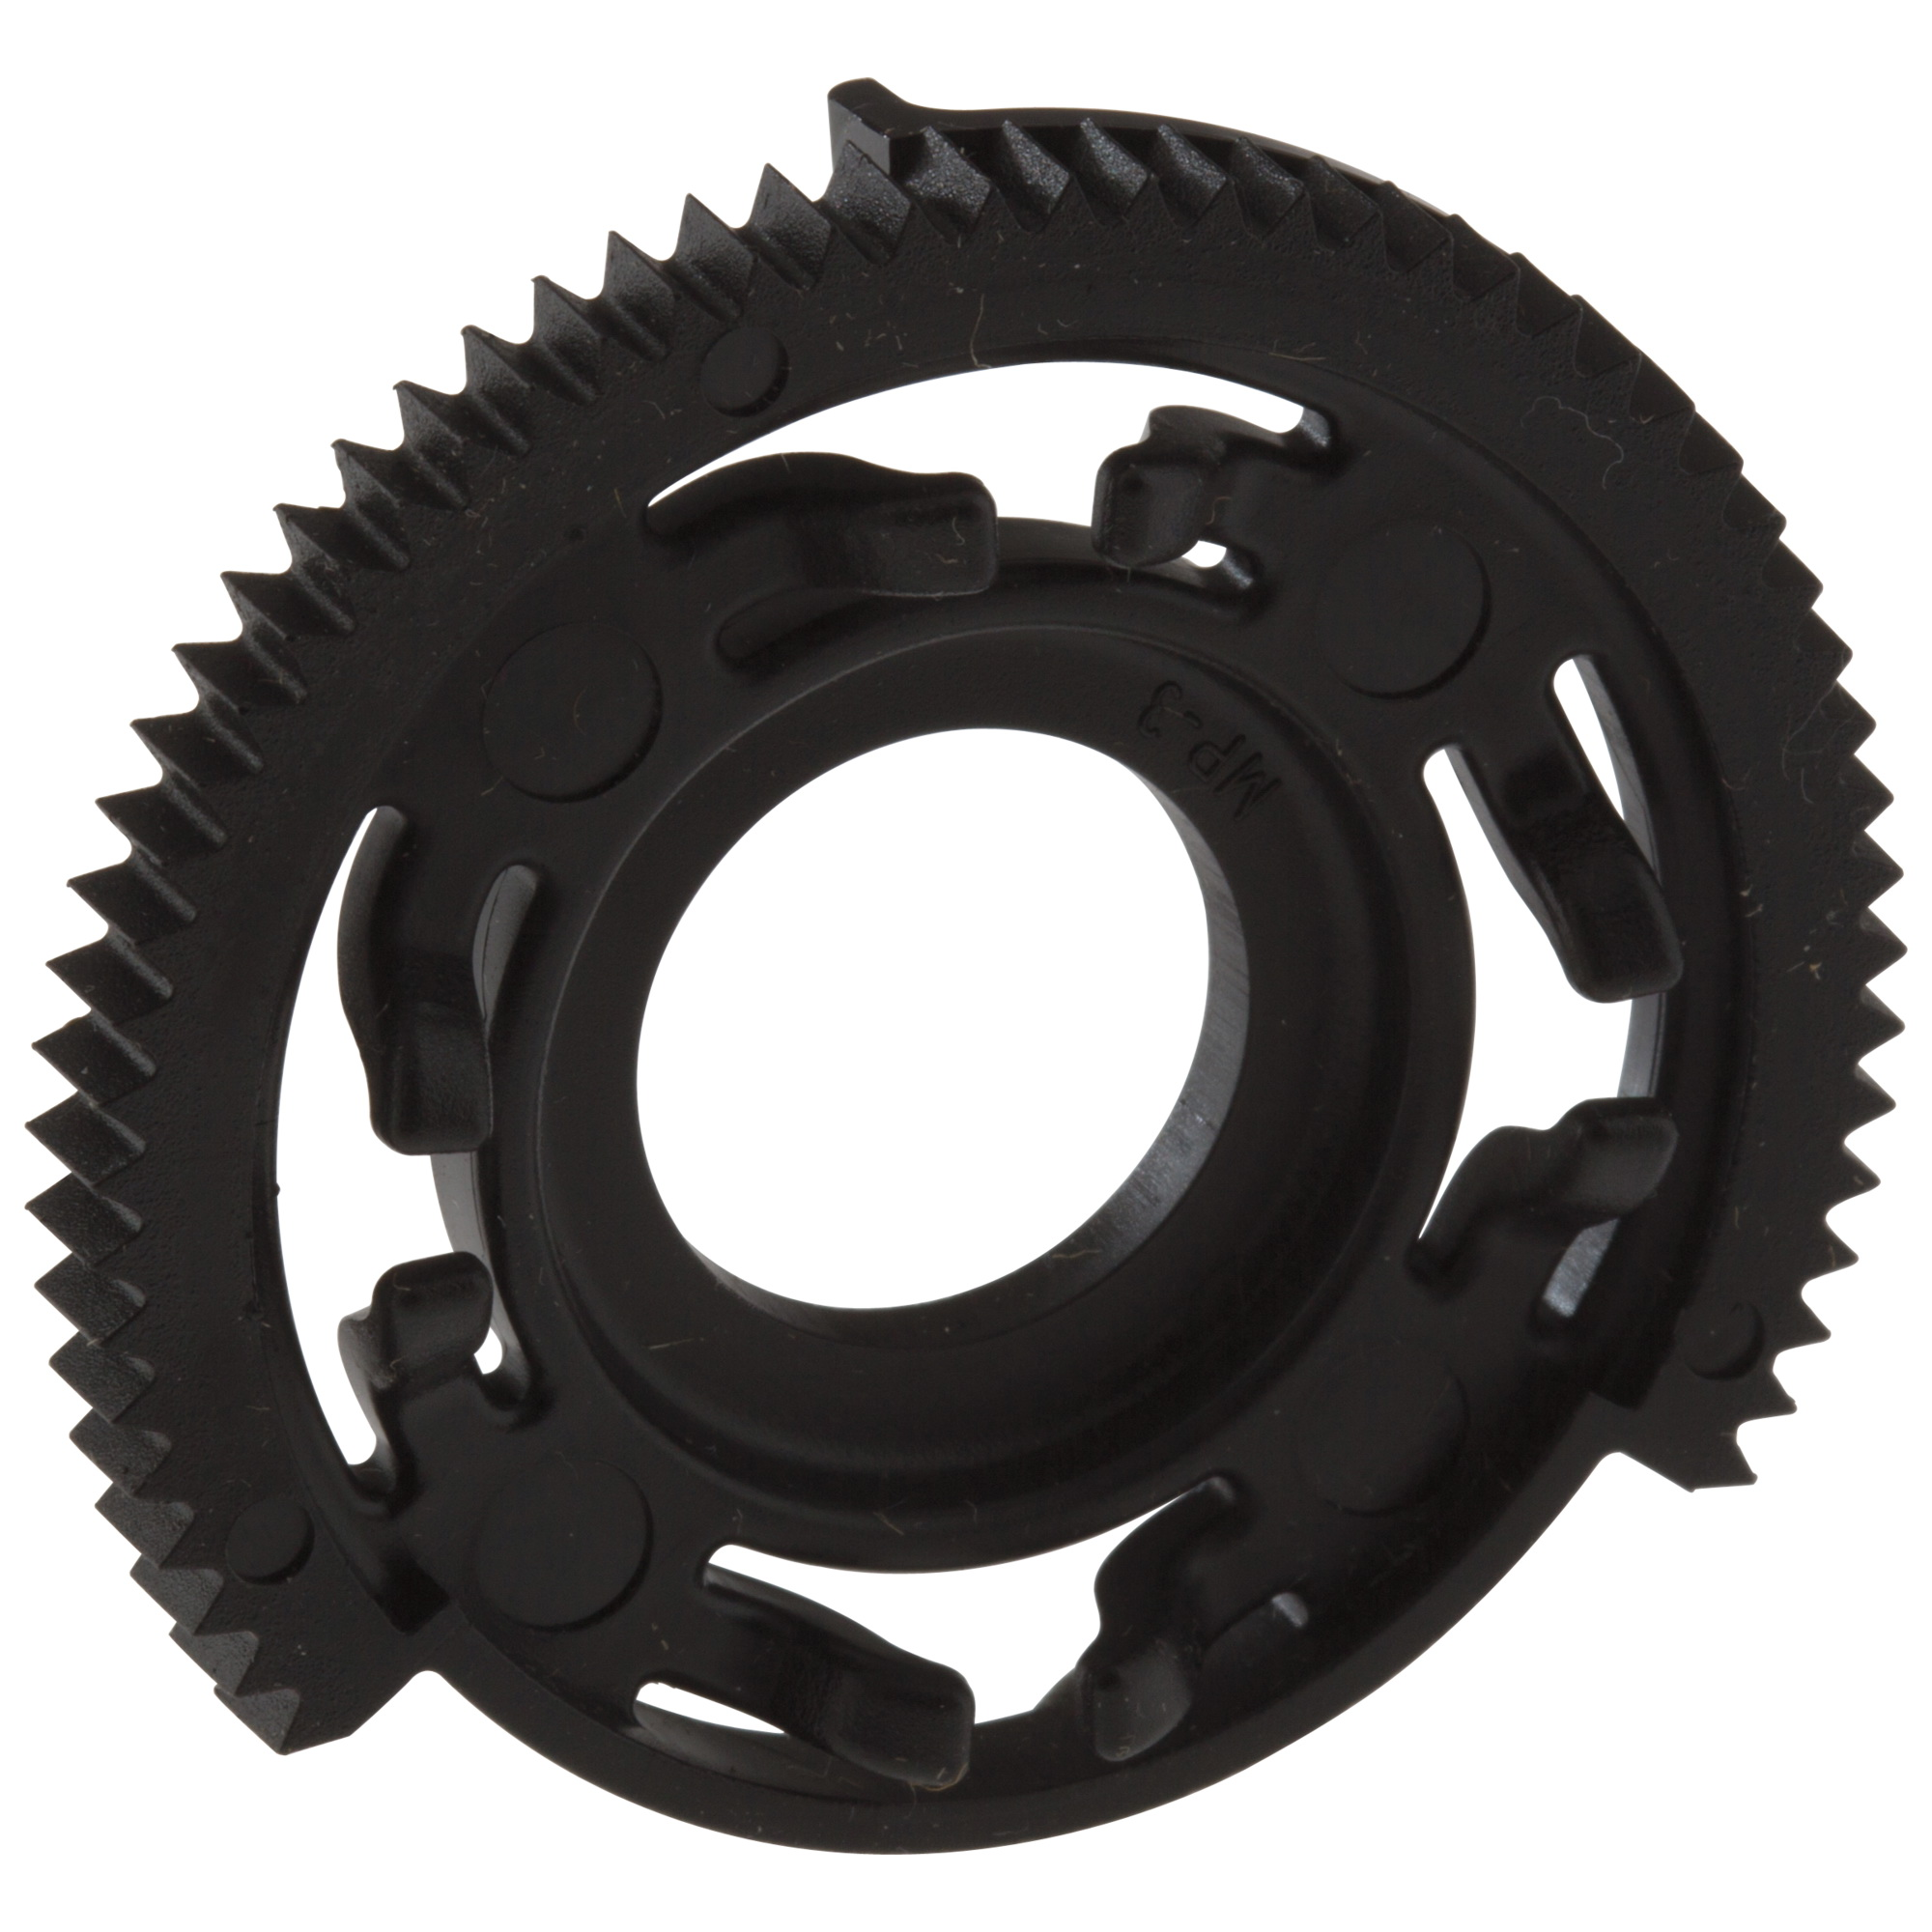 DELTA® RP32102 17 Series Rotational Limit Stop